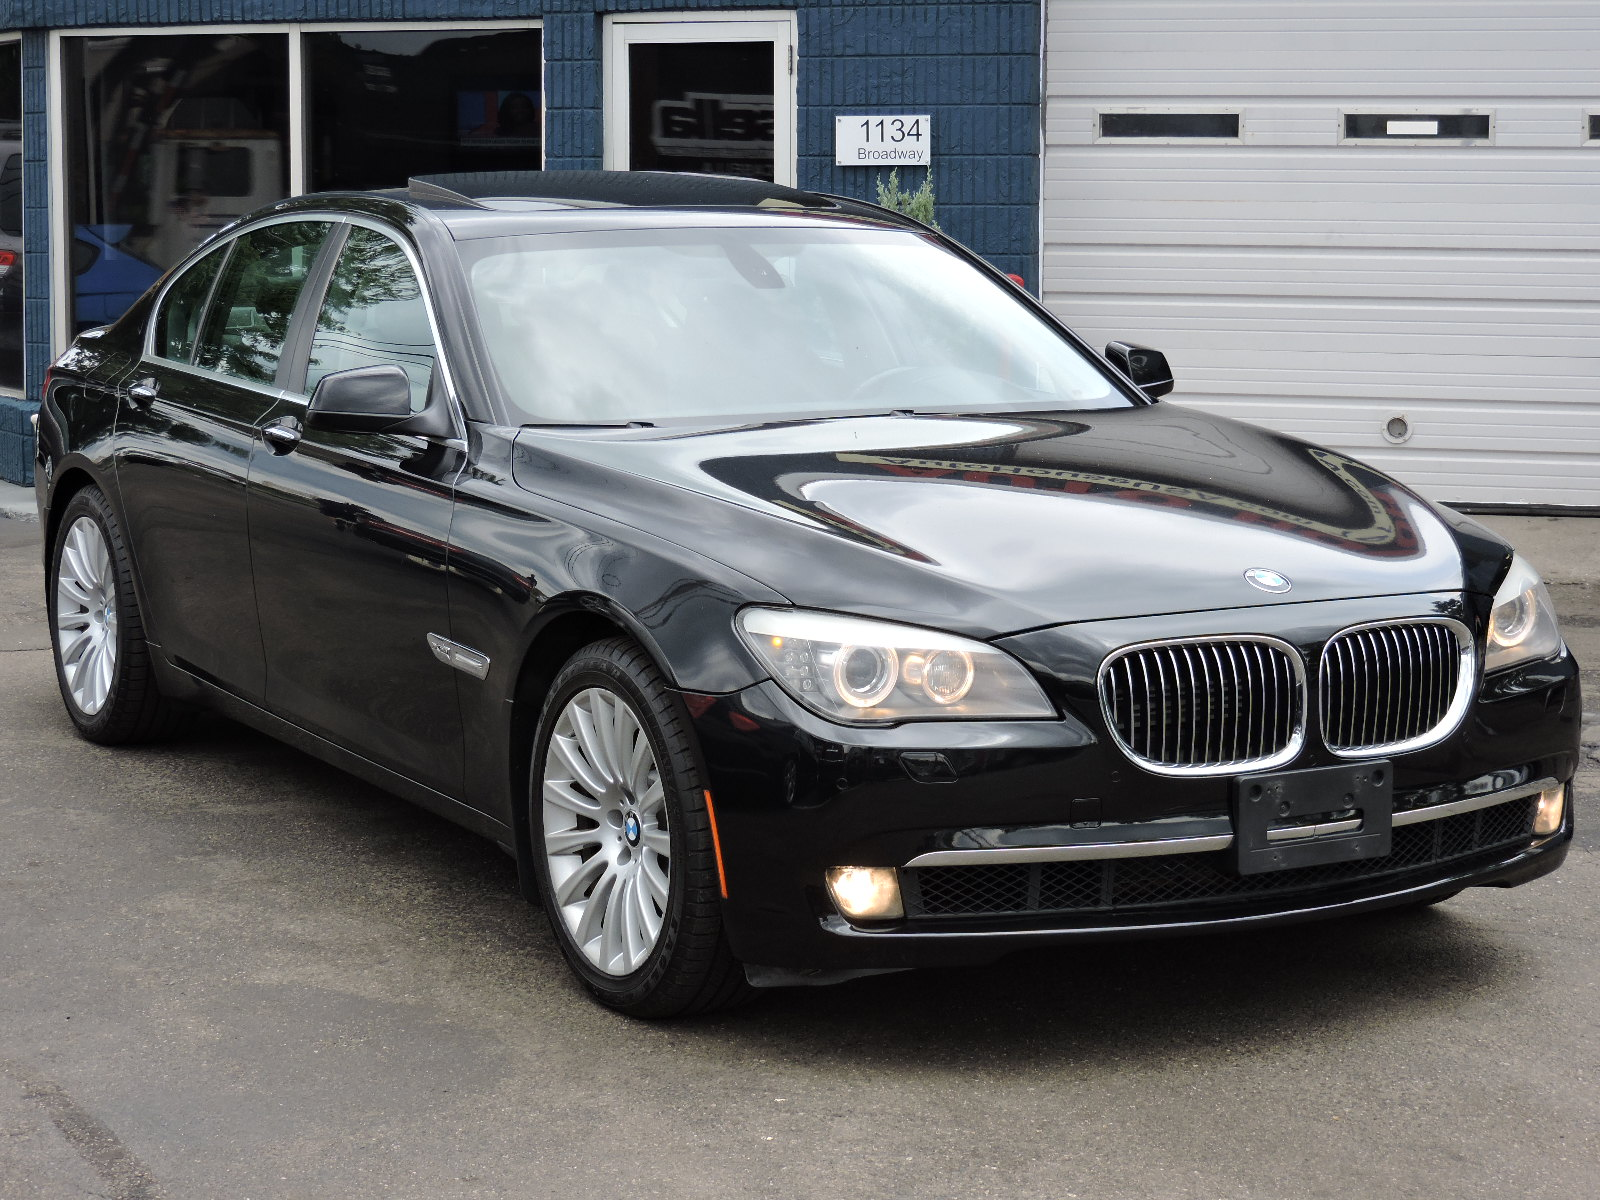 2011 BMW 750i xDrive - All Wheel Drive - Navigation - Sport Package